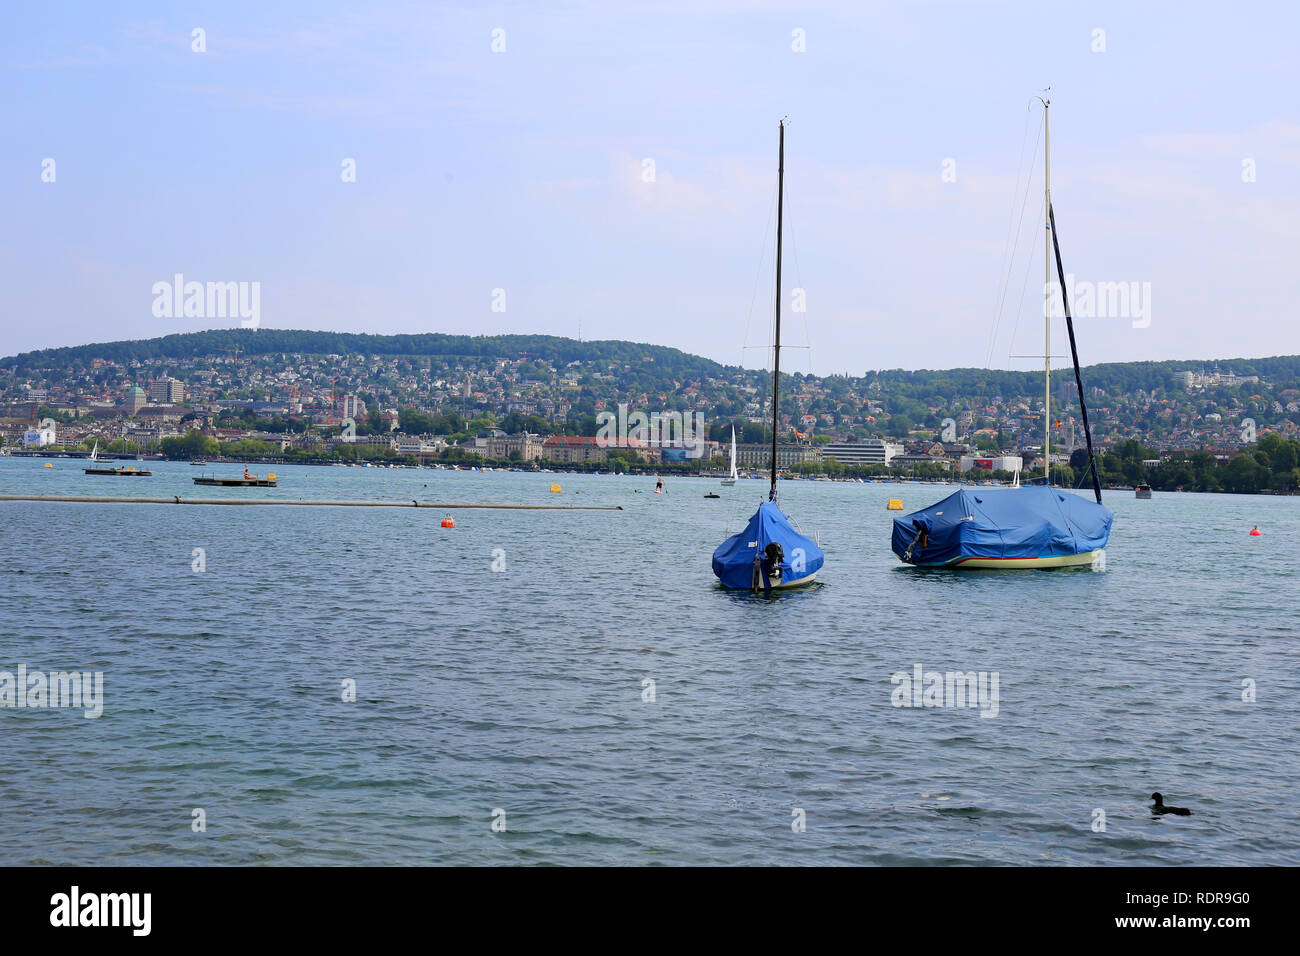 Beautiful landscape from Lake Zürich area in Zürich, Switzerland. In this photo you can see two small sail boats, blue sky and the mountains. - Stock Image